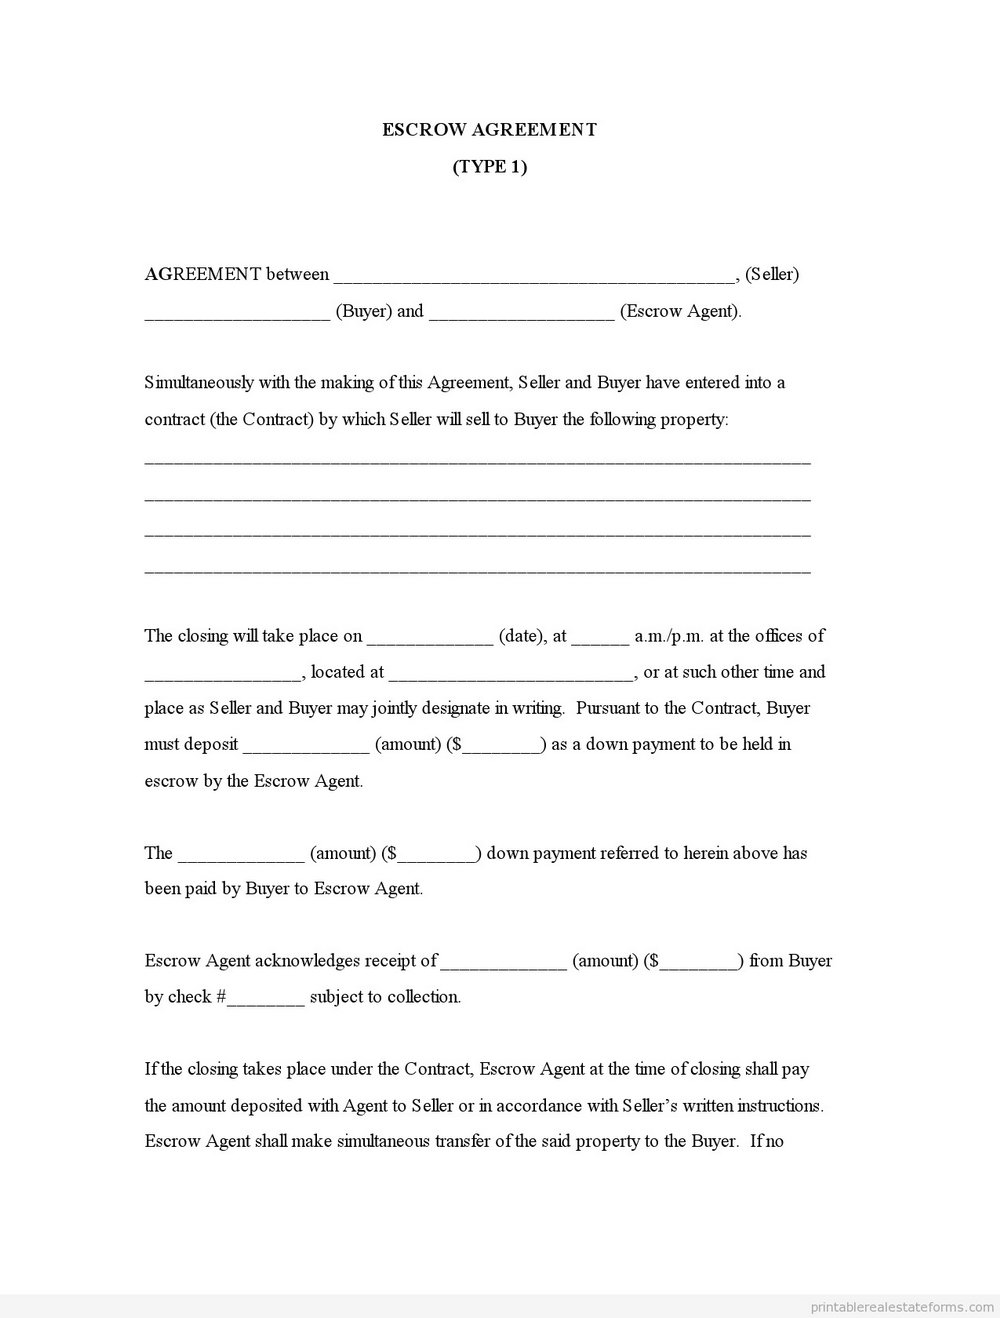 Real Estate Escrow Agreement Form